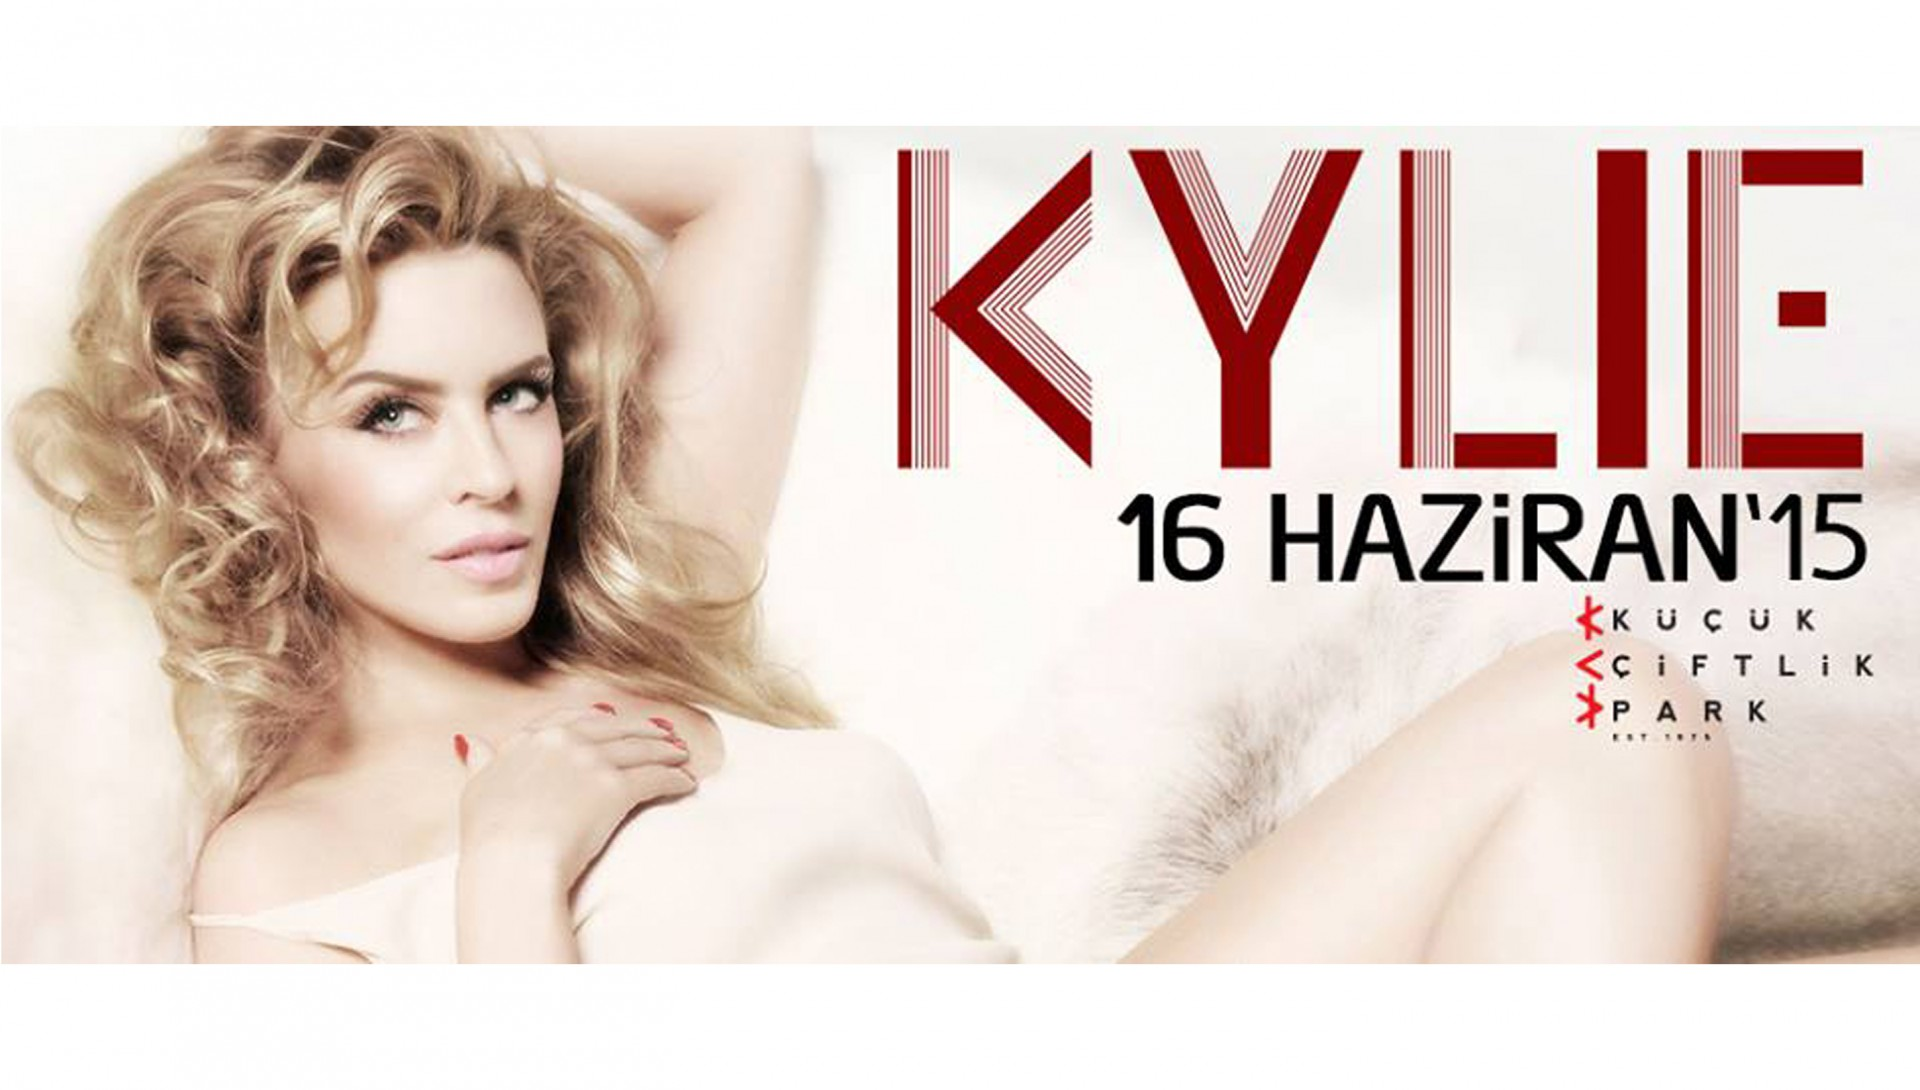 kylie minogue concert istanbul 2015